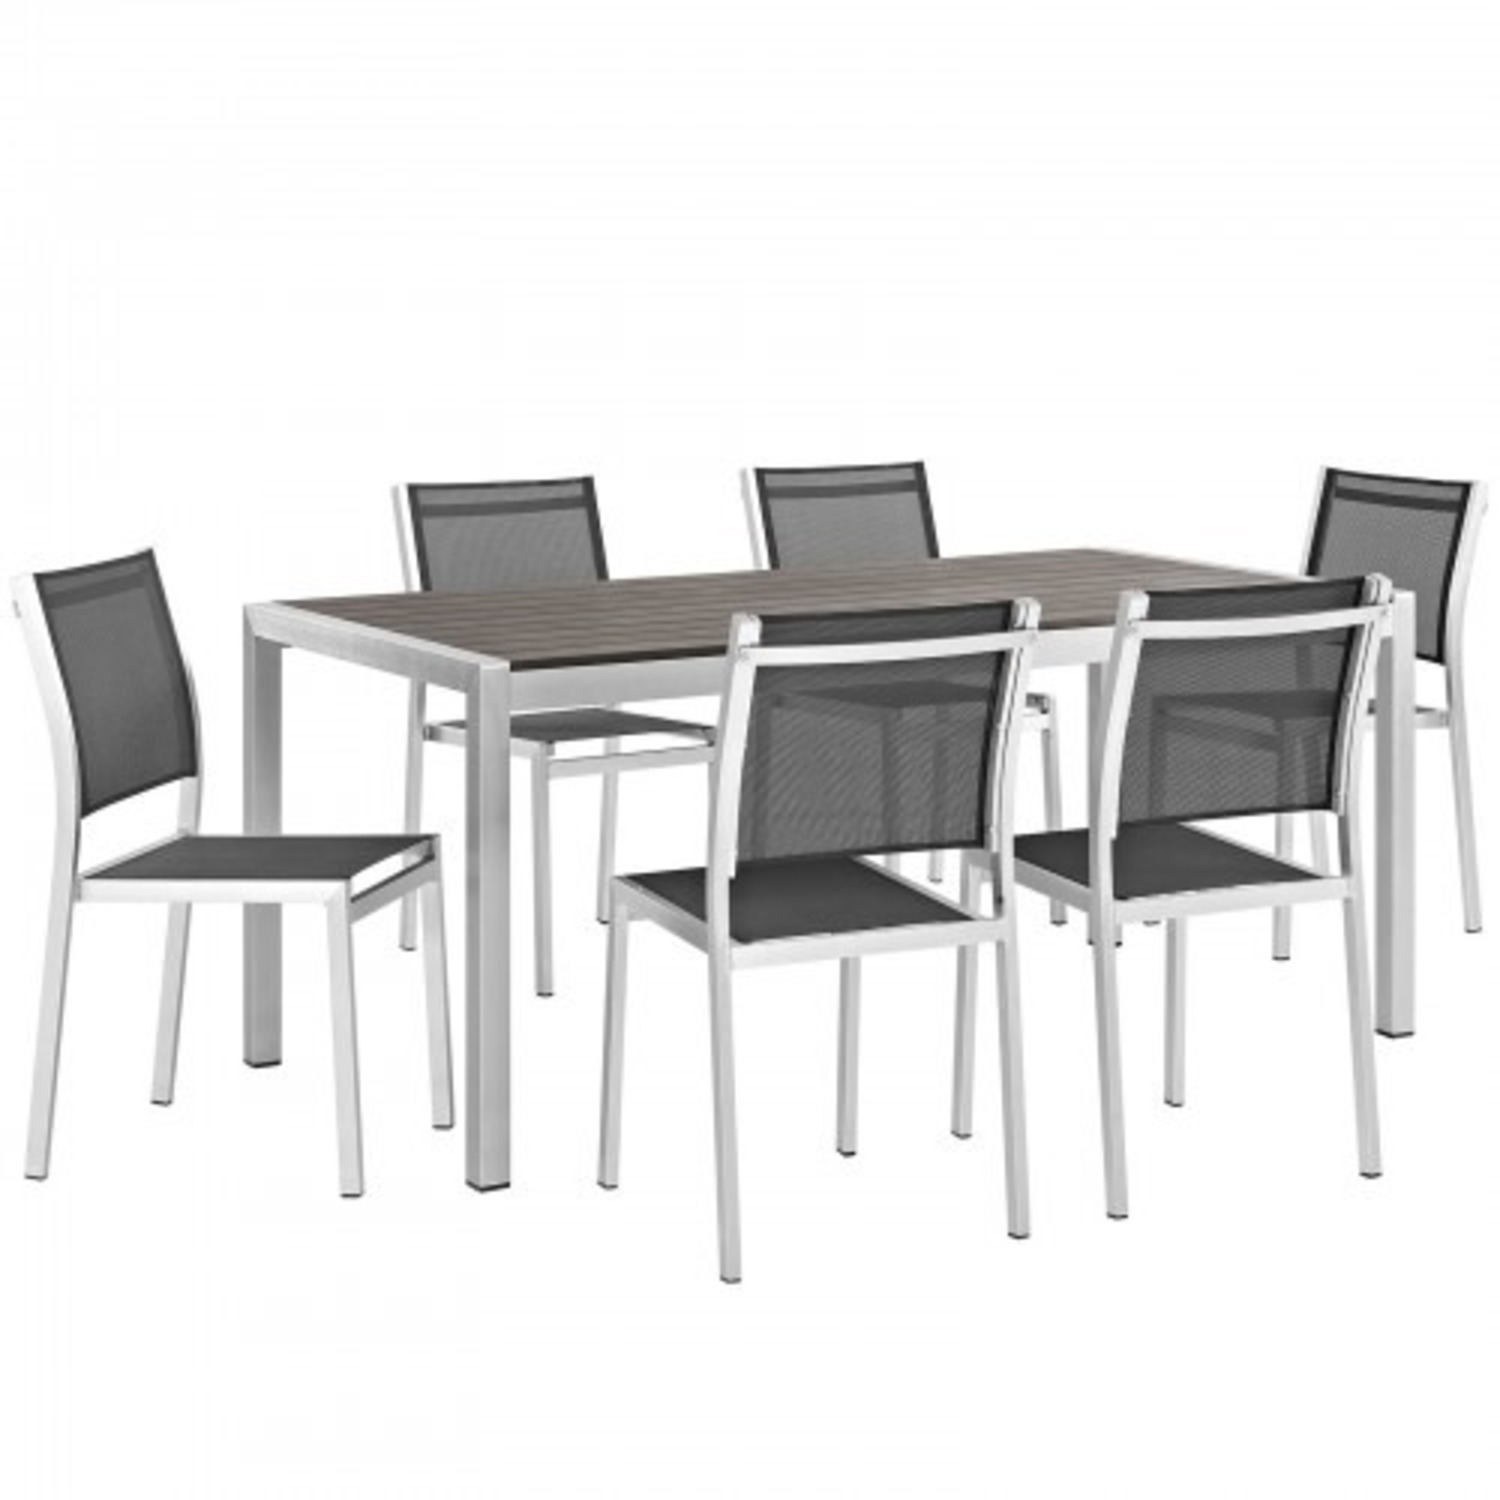 Modern 7-Piece Dining Set In Black & Silver Finish - image-0